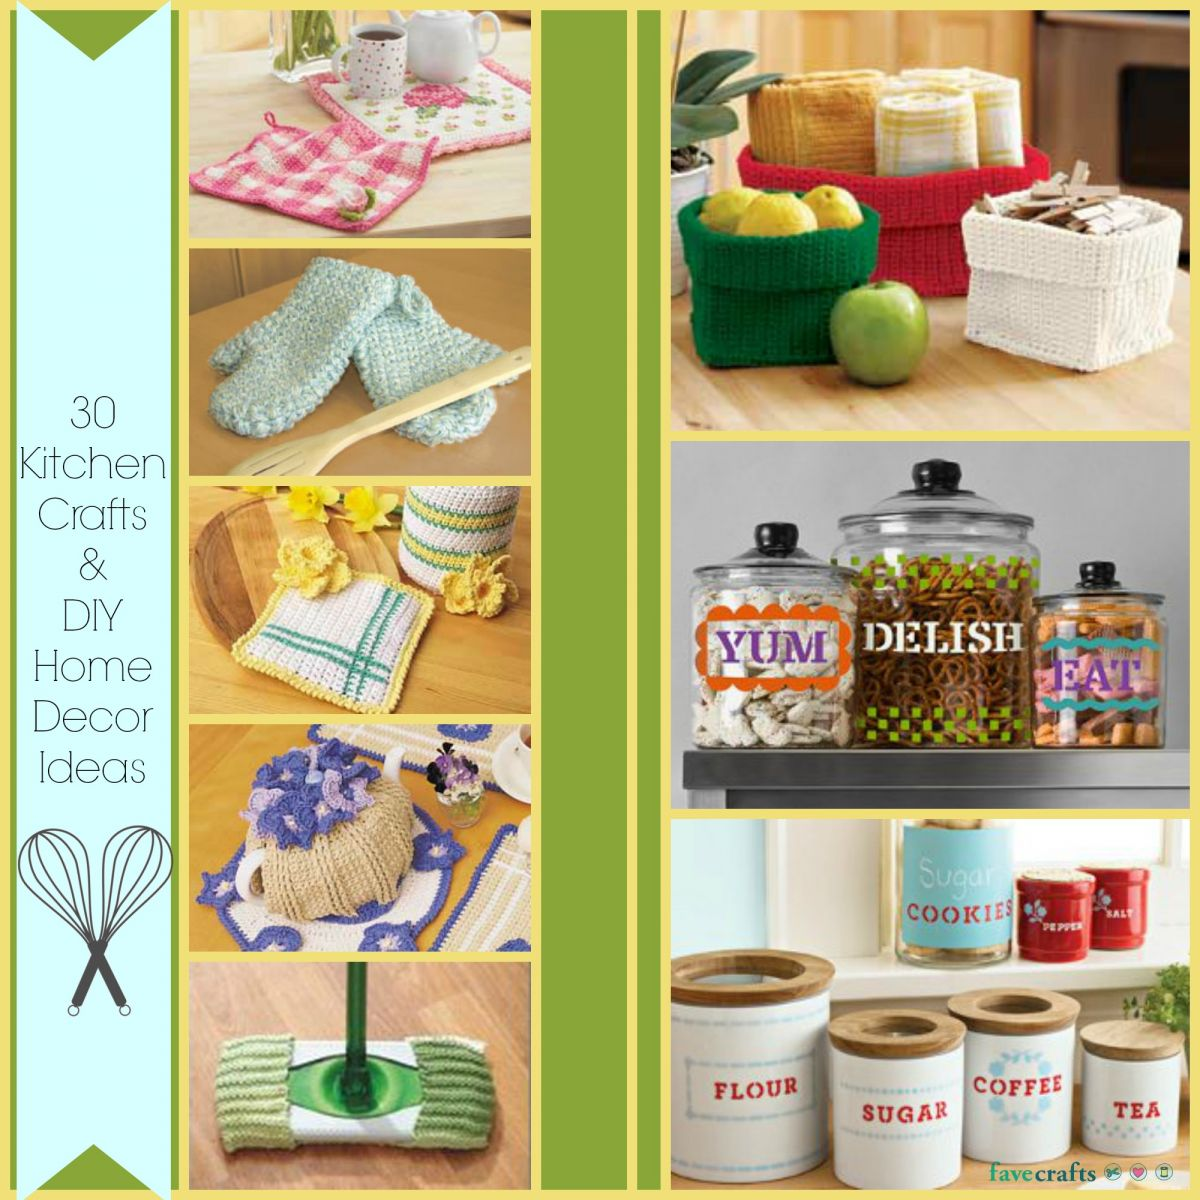 30 kitchen crafts and diy home decor ideas for Best diy home decor projects